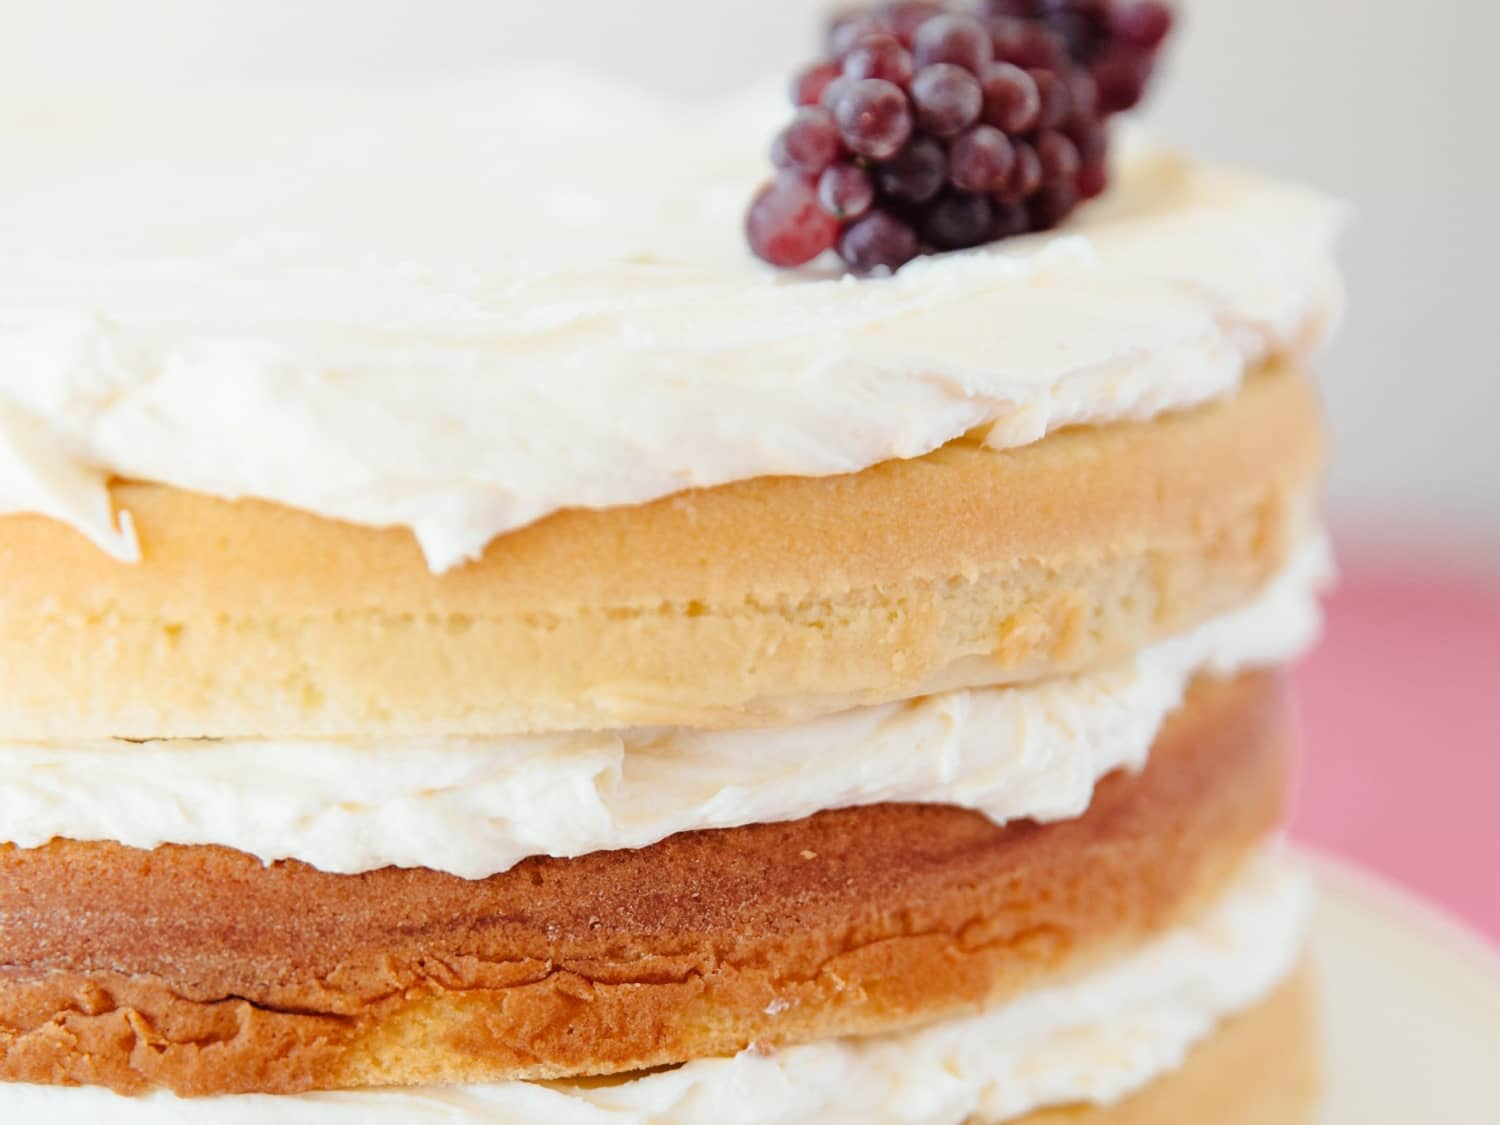 How To Make a Basic Butter Cake from Scratch